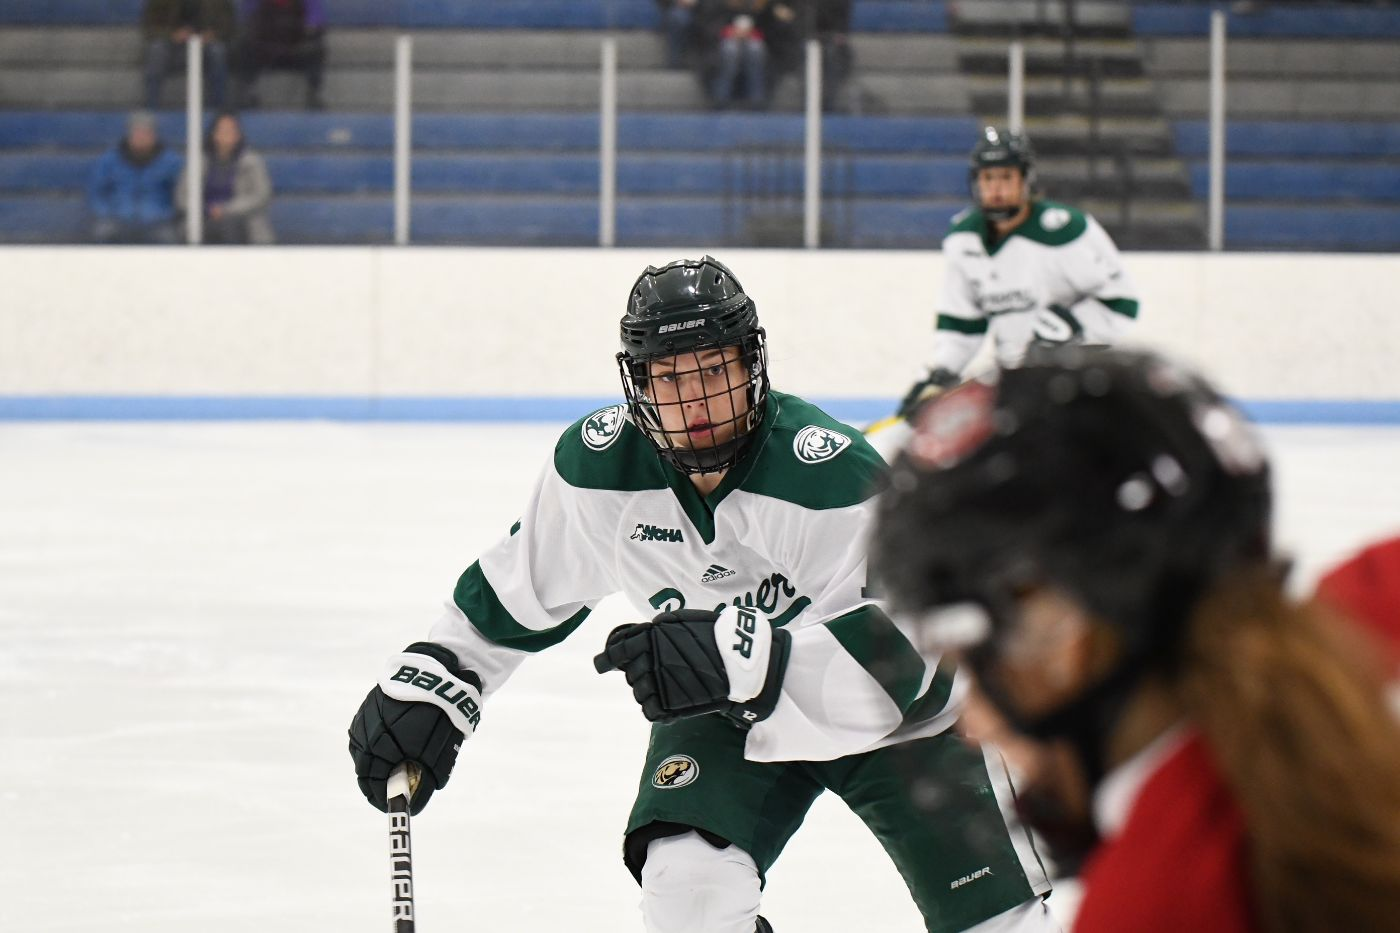 Bemidji State falls to St. Cloud State in U.S. Hockey Hall of Fame Game